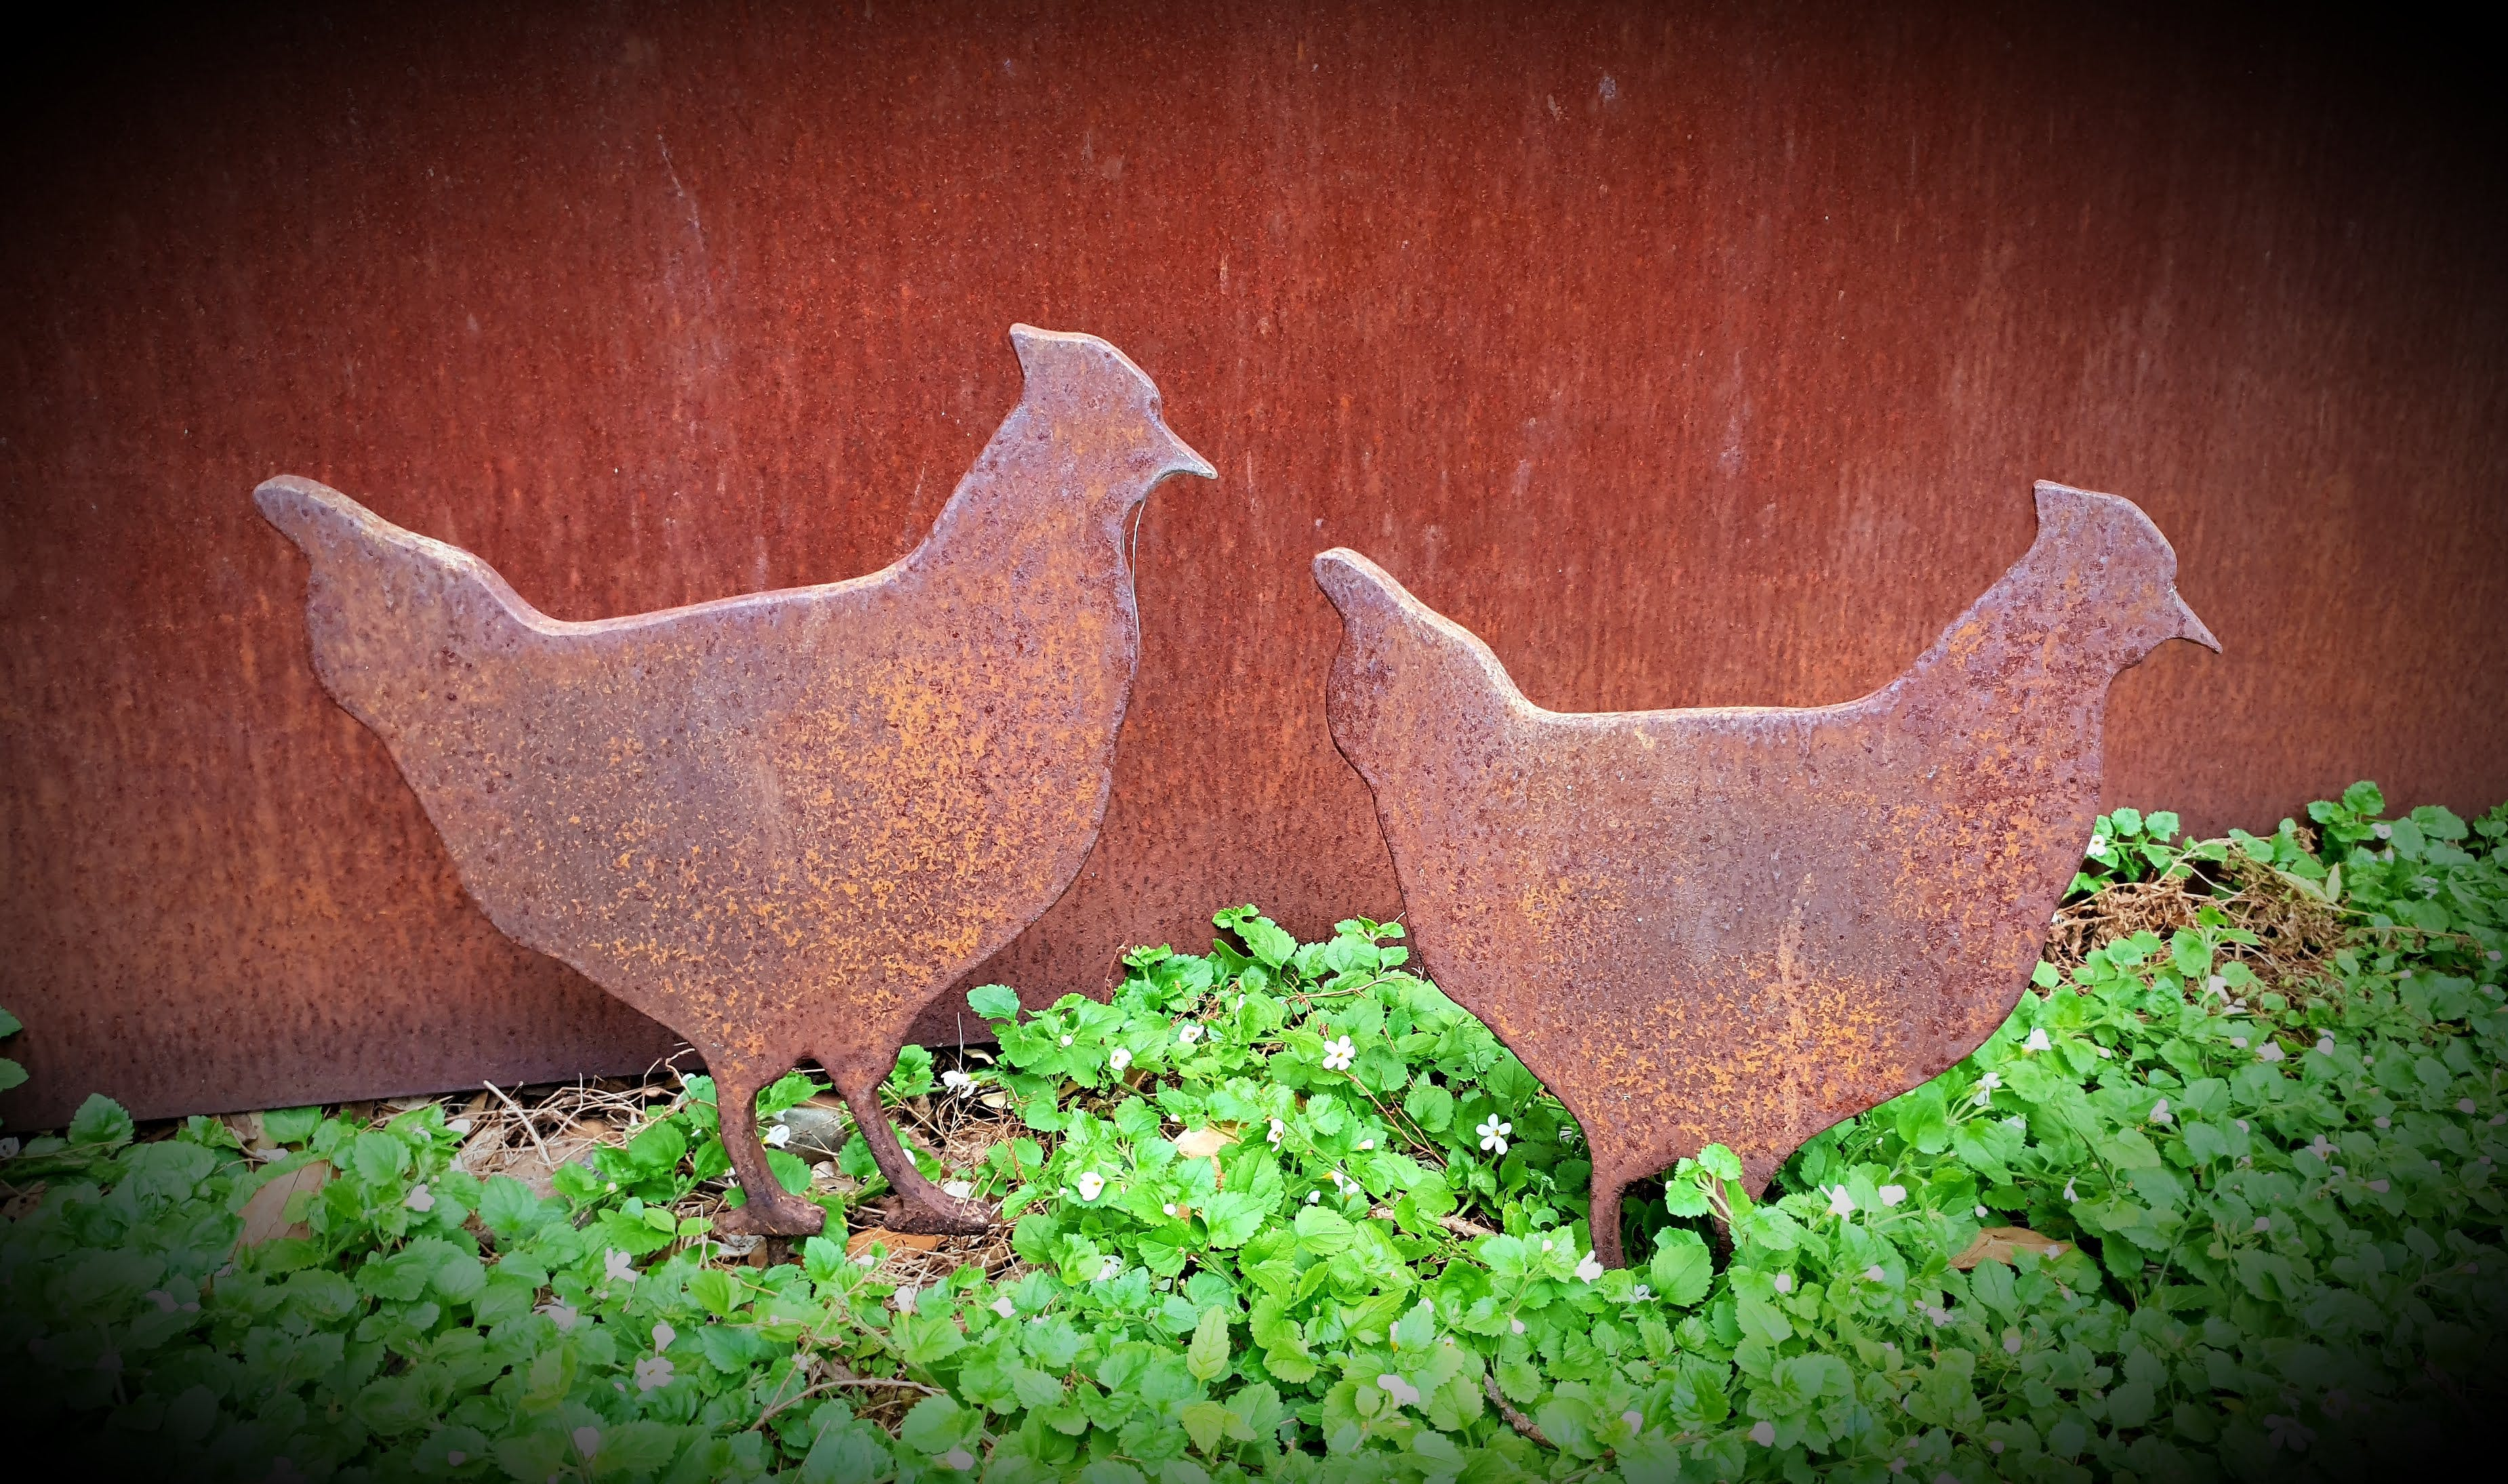 Free stock photo of chickens, Garden Ornaments, home garden, metal art